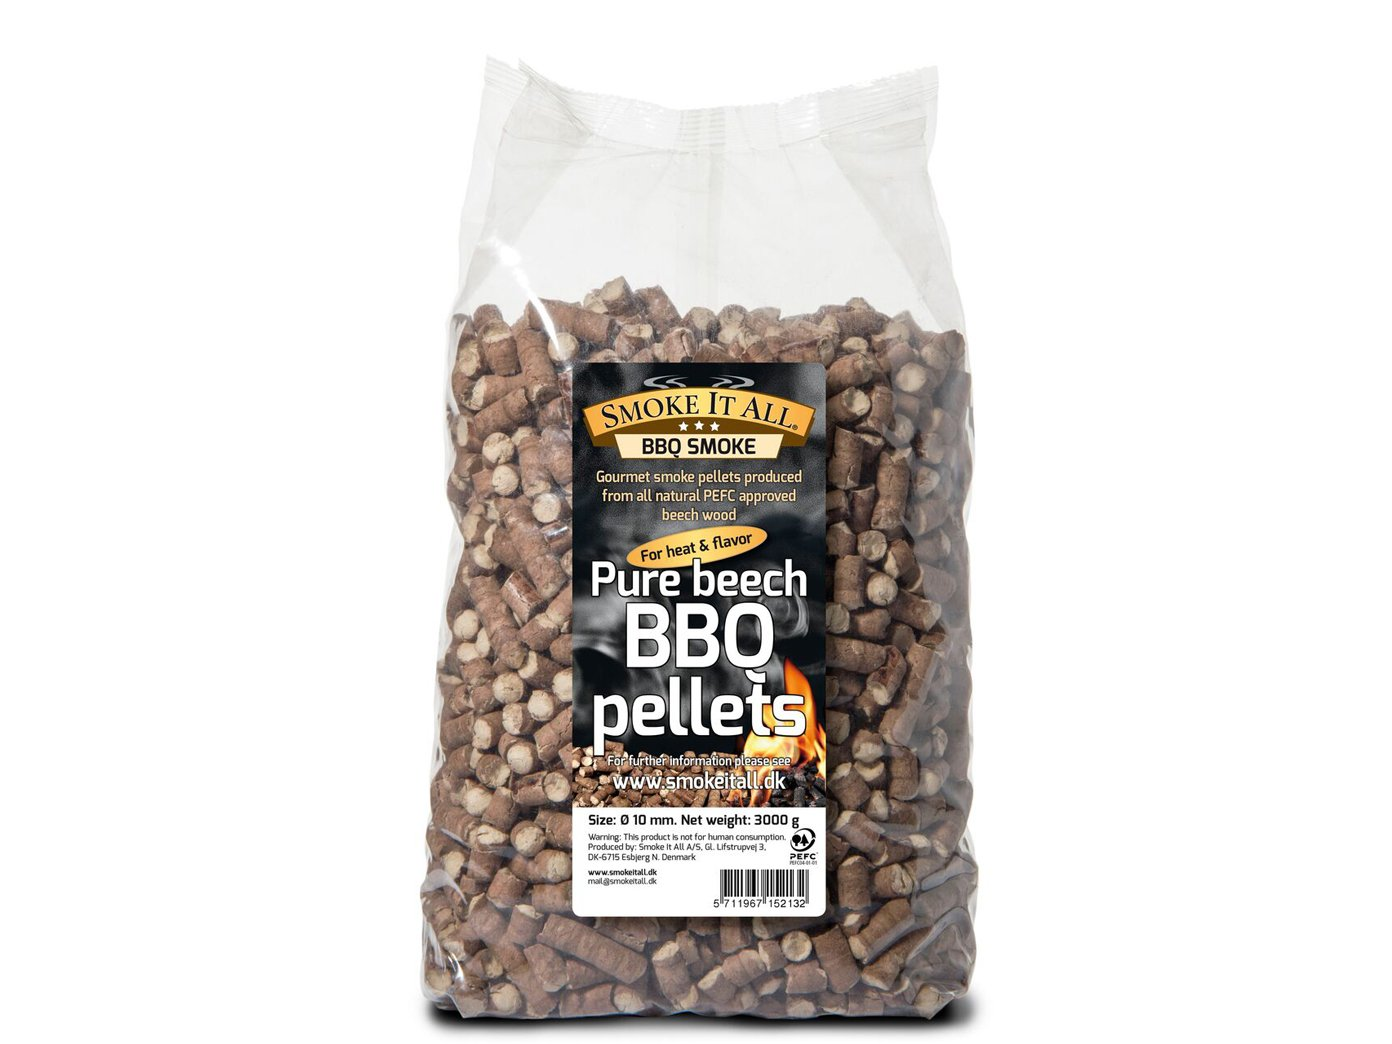 Smoke it All Barbecue Pellets räucherpelltes bois de hêtre 3 kg pour barbecue OD. Fumoir ; 61200